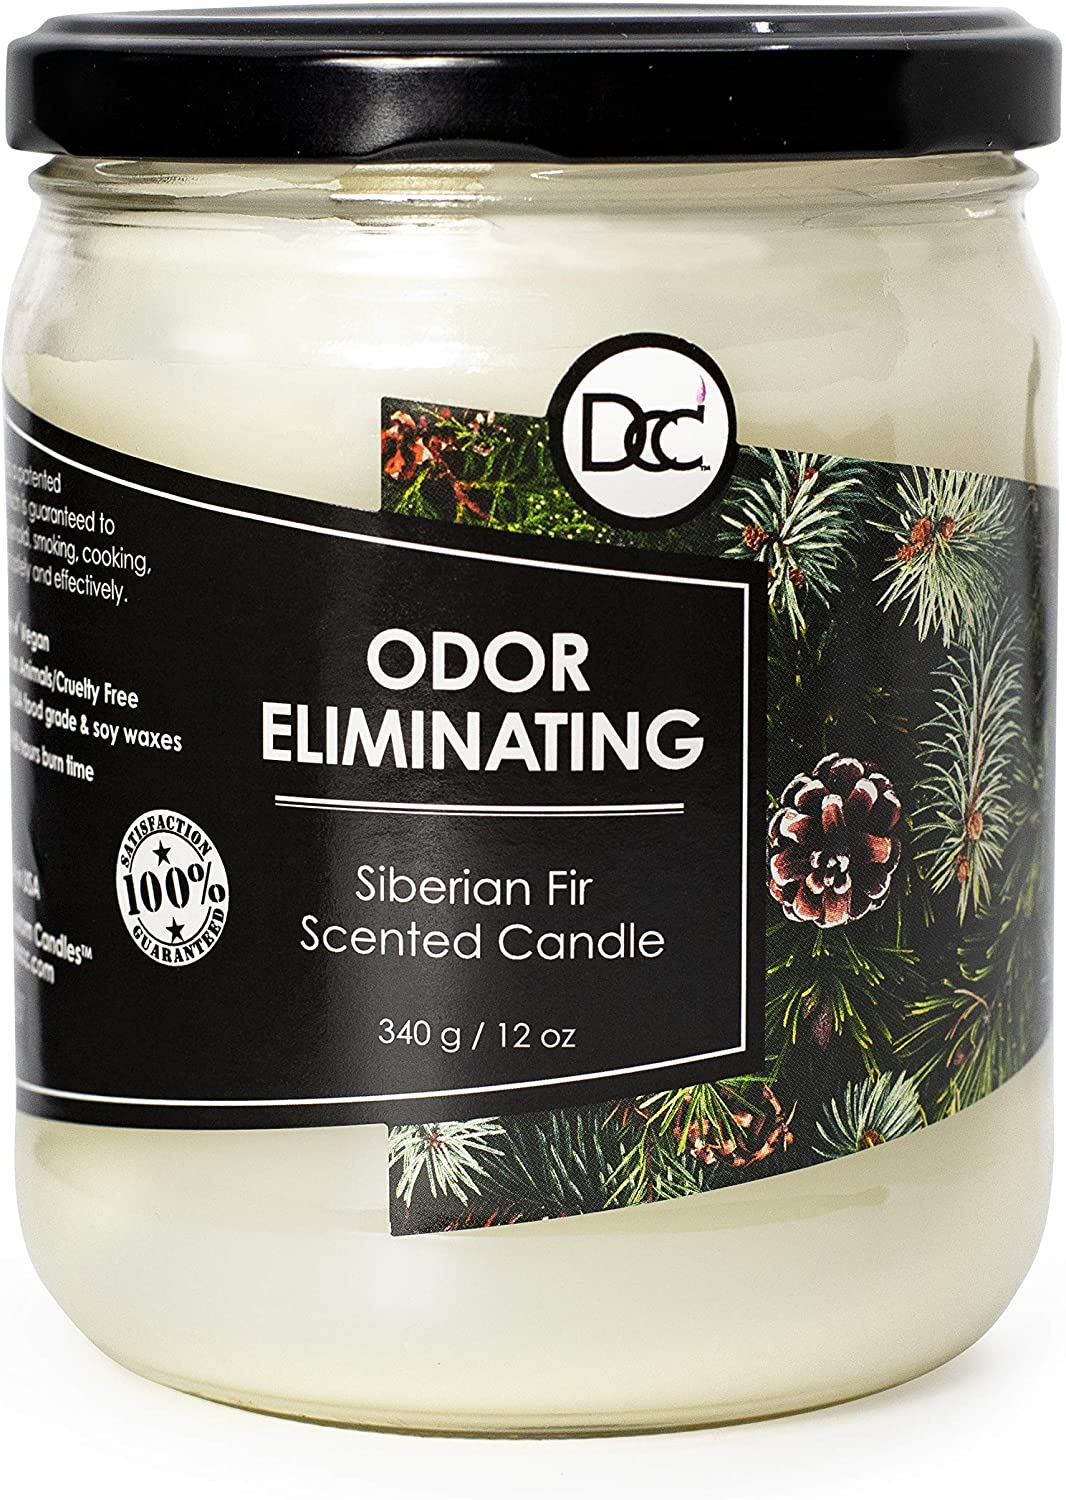 Odor Eliminating Highly Fragranced Candle - Neutralizes Pet, Smoke, Food, and Other Smells Quickly - Up to 80 Hour Burn time - 12 Ounce Premium Soy Blend (Siberian Fir)